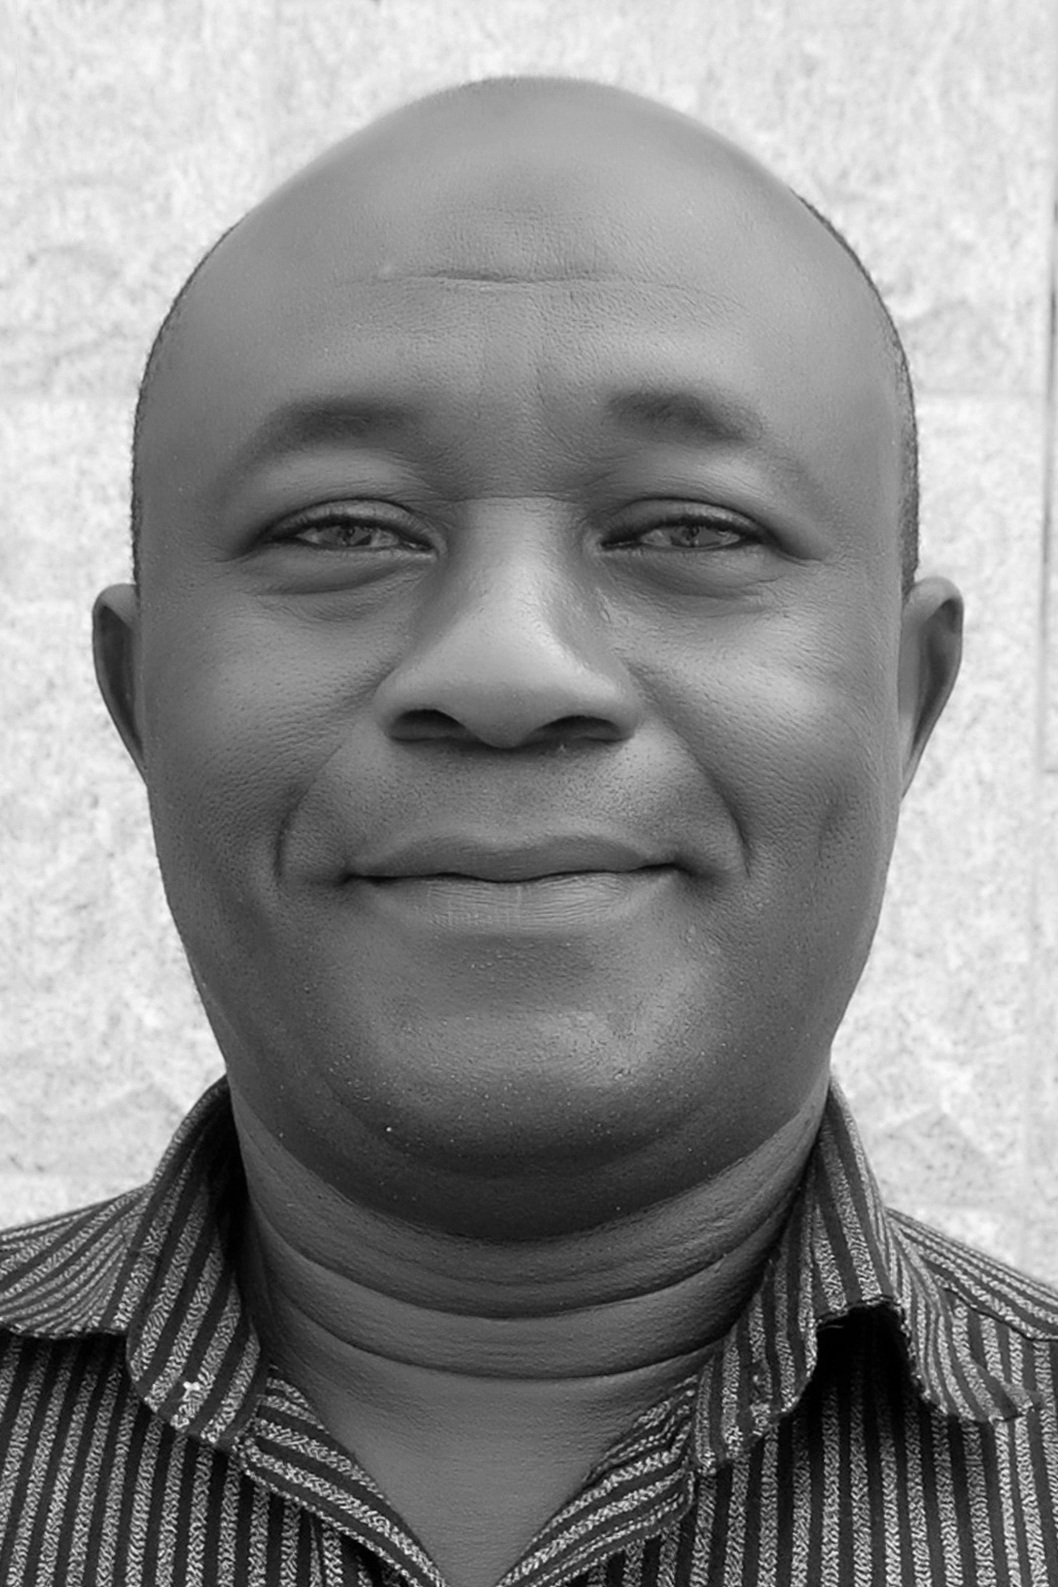 ISIAKA LEMBOYE  SECURITY MANAGER  NORTH EAST NIGERIA